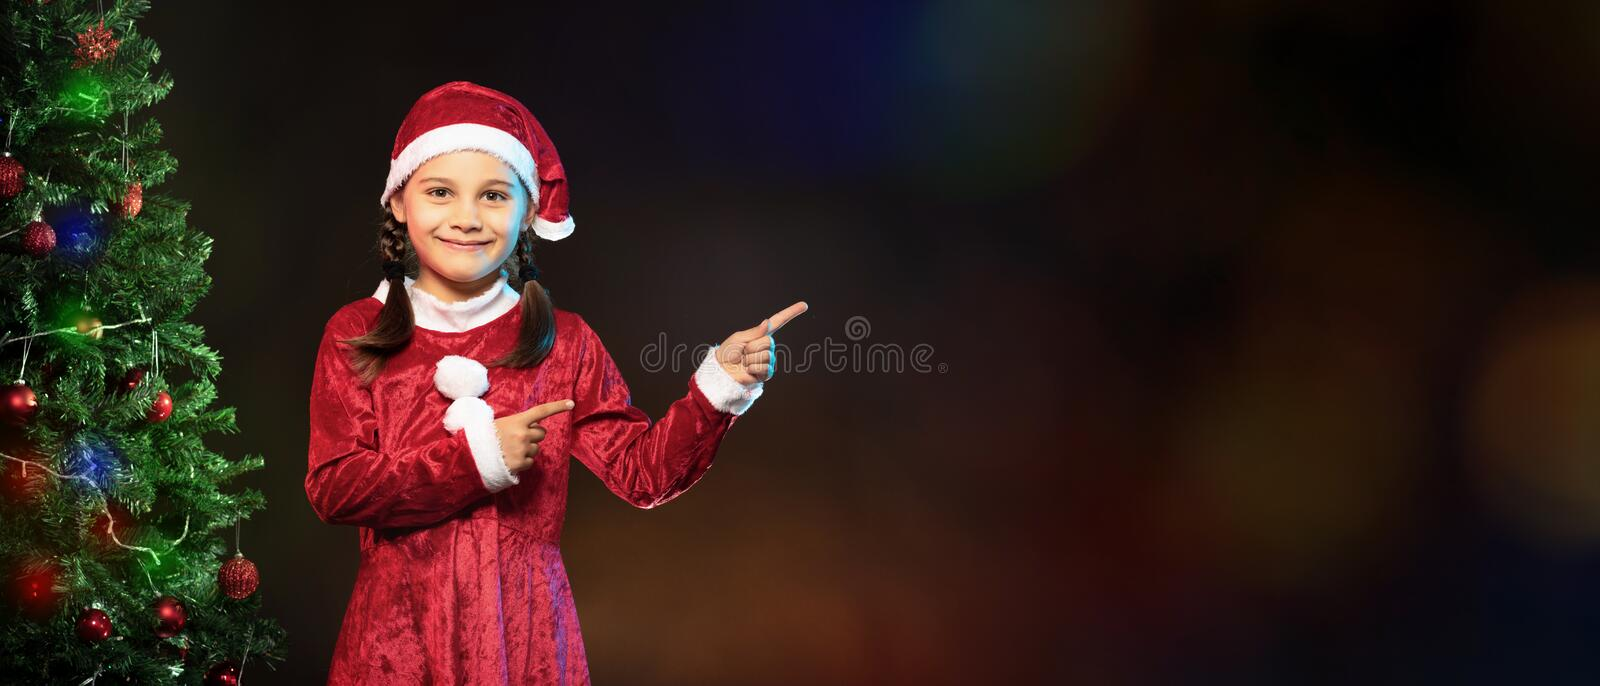 Portrait of Little Adorable Girl in Christmas Costume royalty free stock image